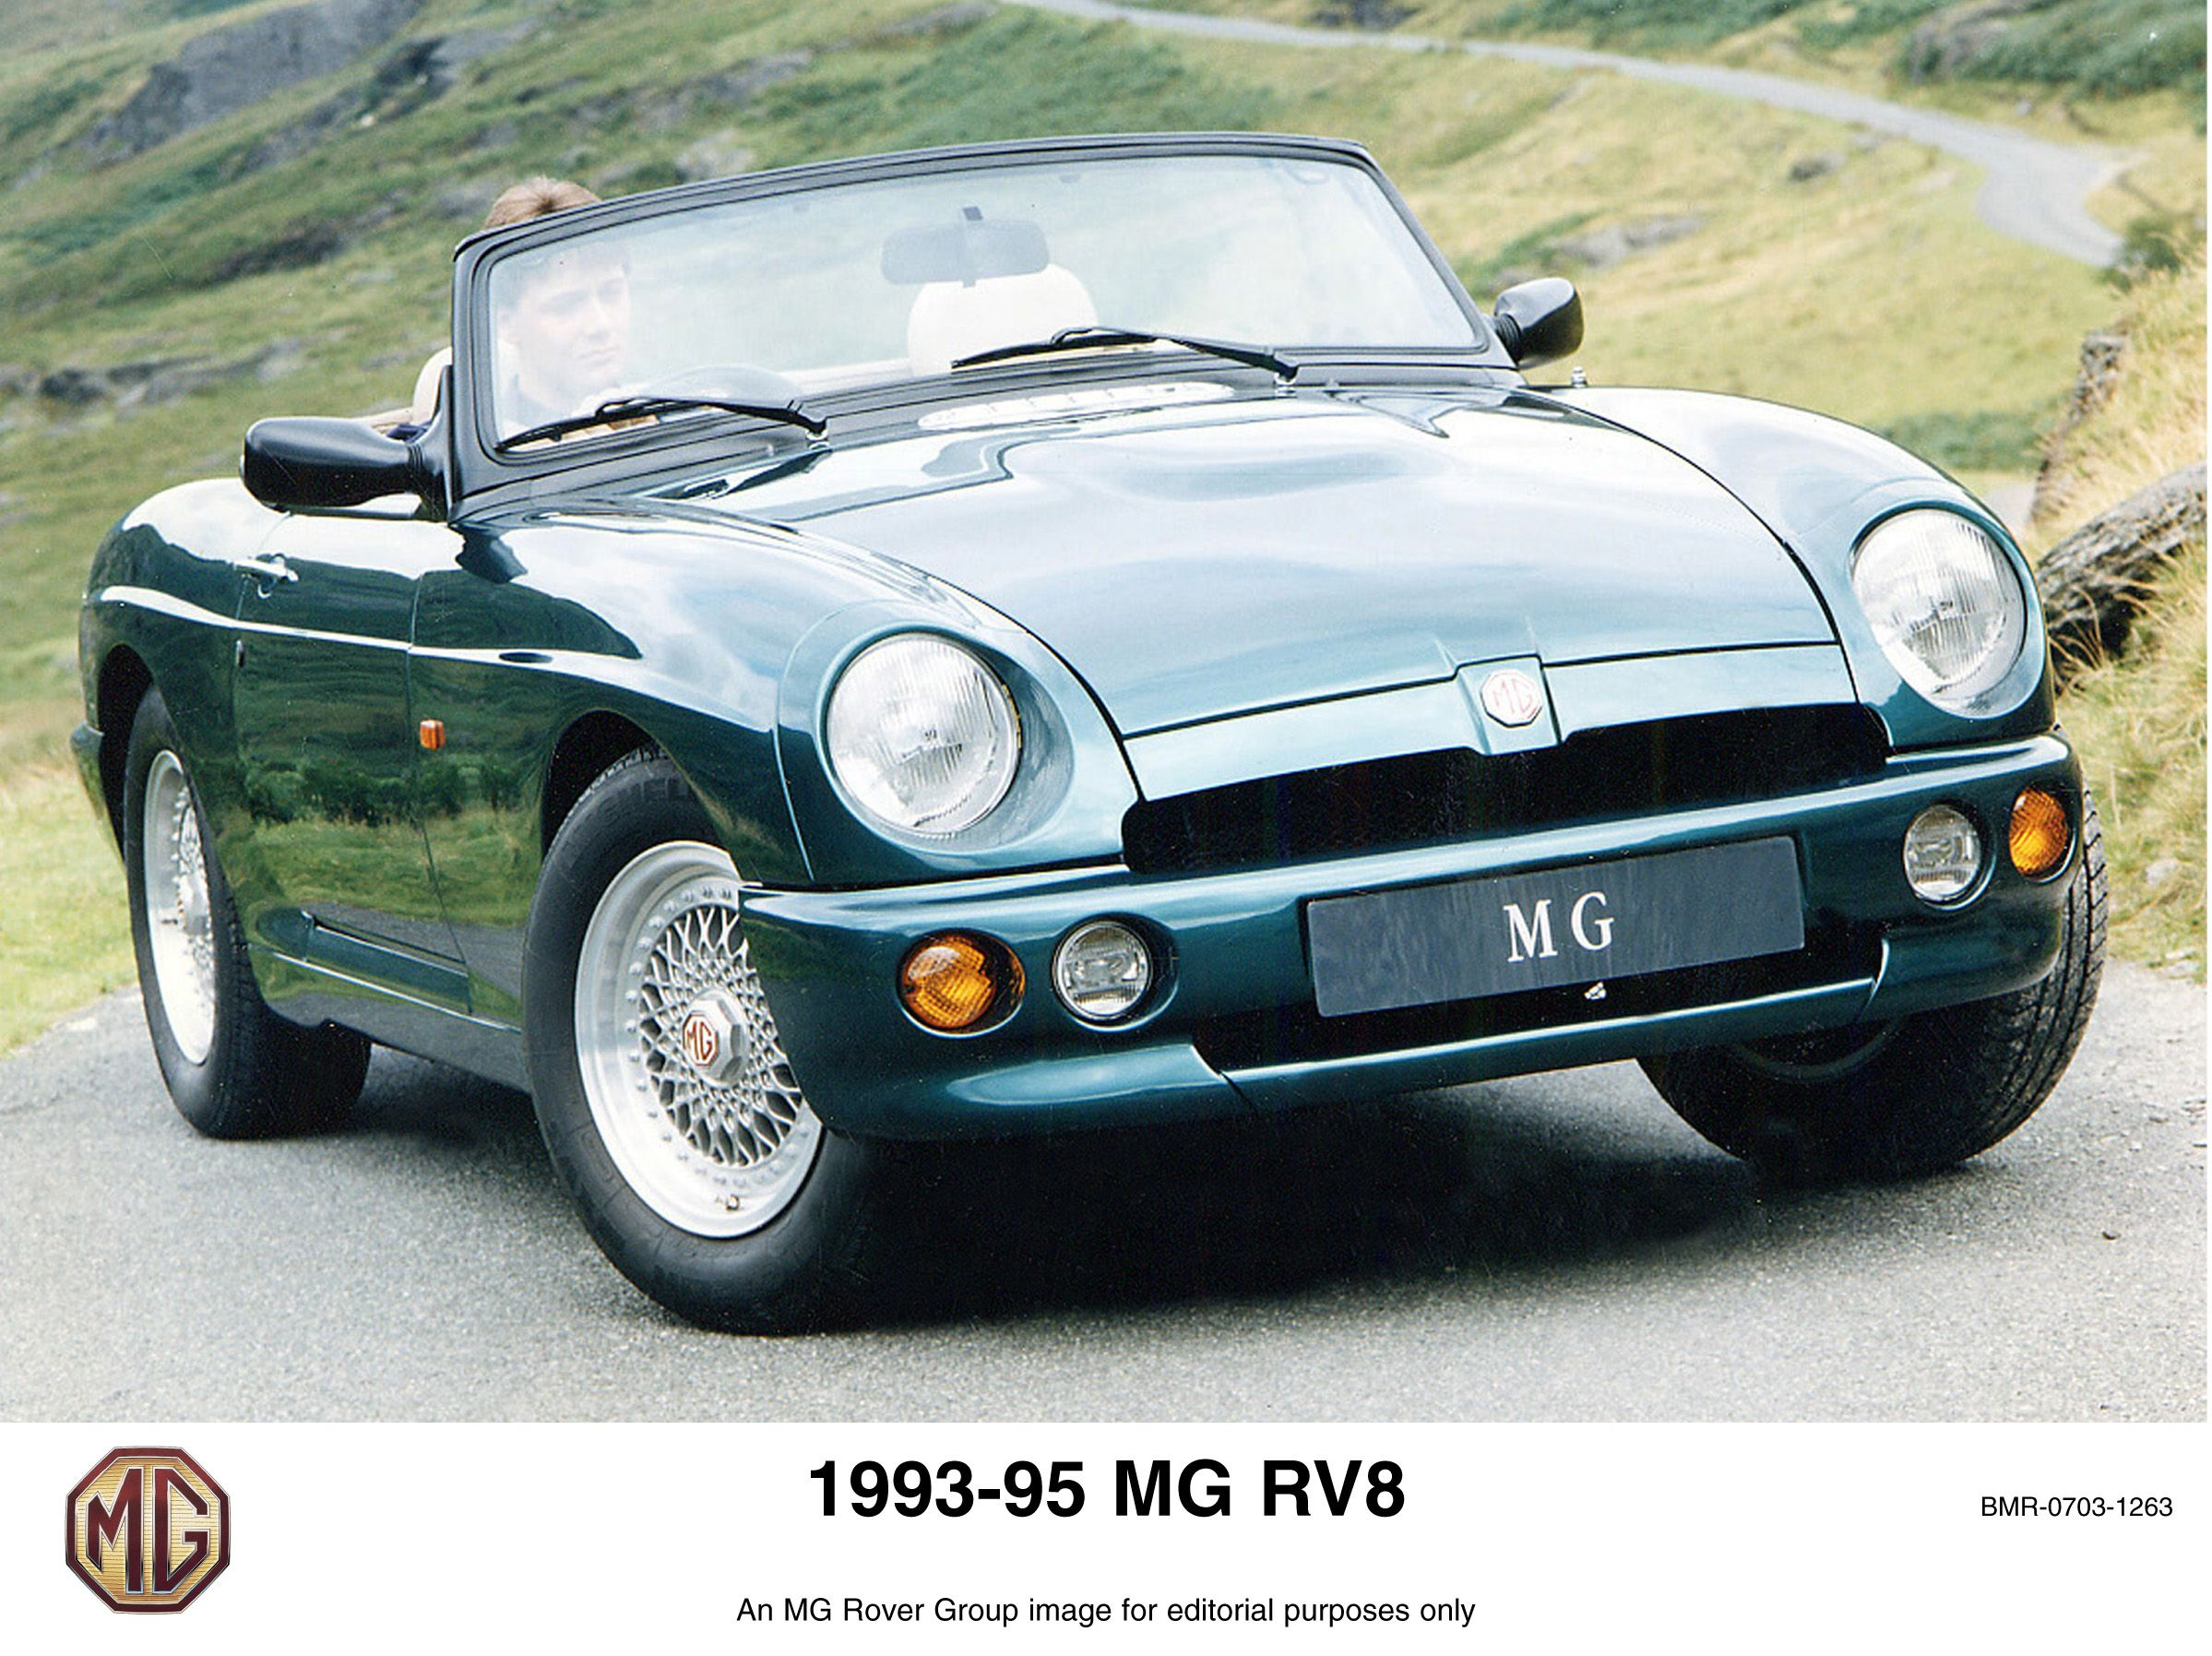 rover mg rv8 promotional picture british sports cars british motors mg cars rover mg rv8 promotional picture